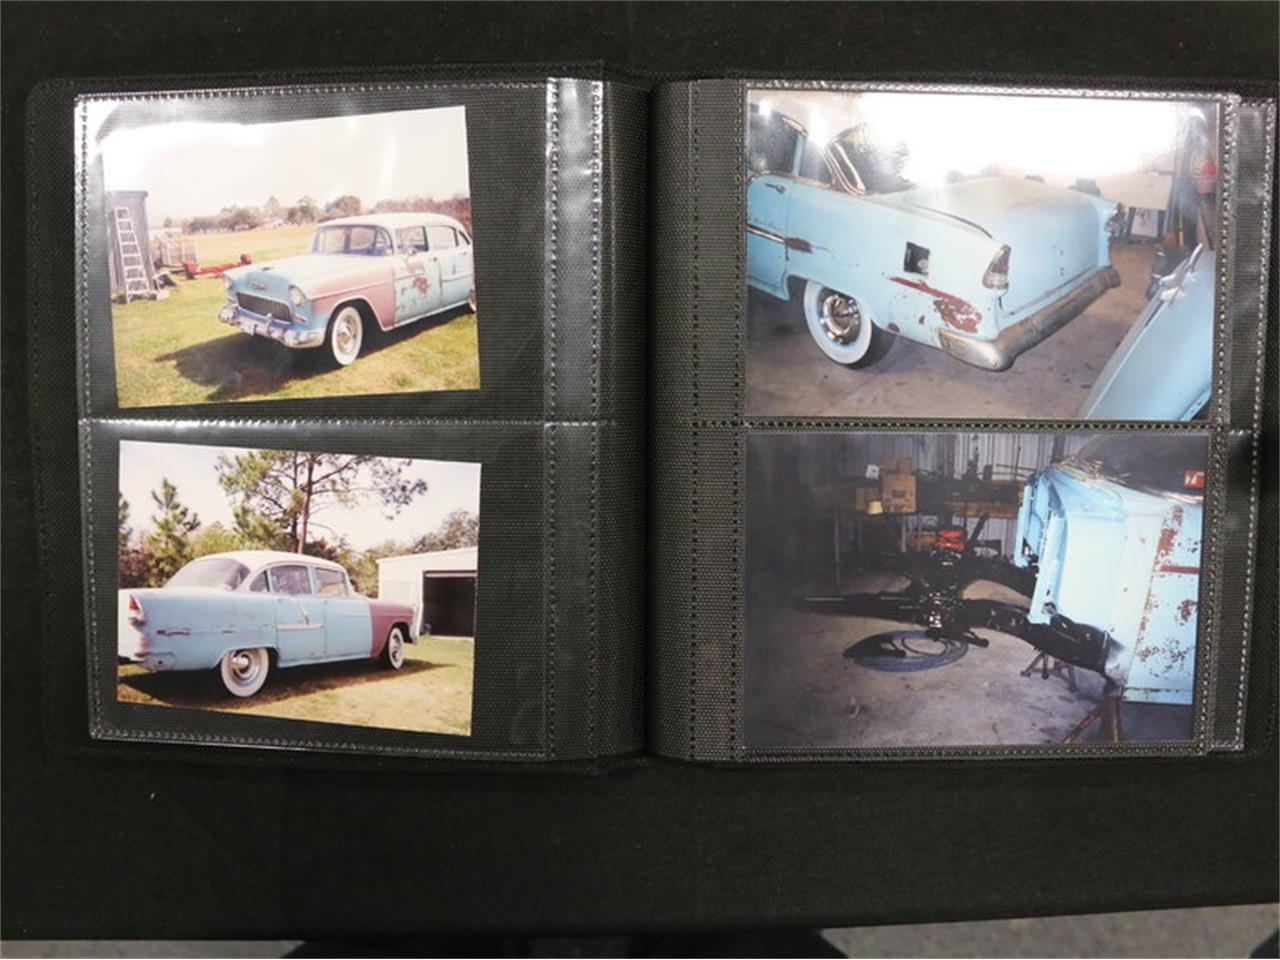 Large Picture of 1955 Chevrolet Bel Air - $25,995.00 Offered by Streetside Classics - Dallas / Fort Worth - LSOT